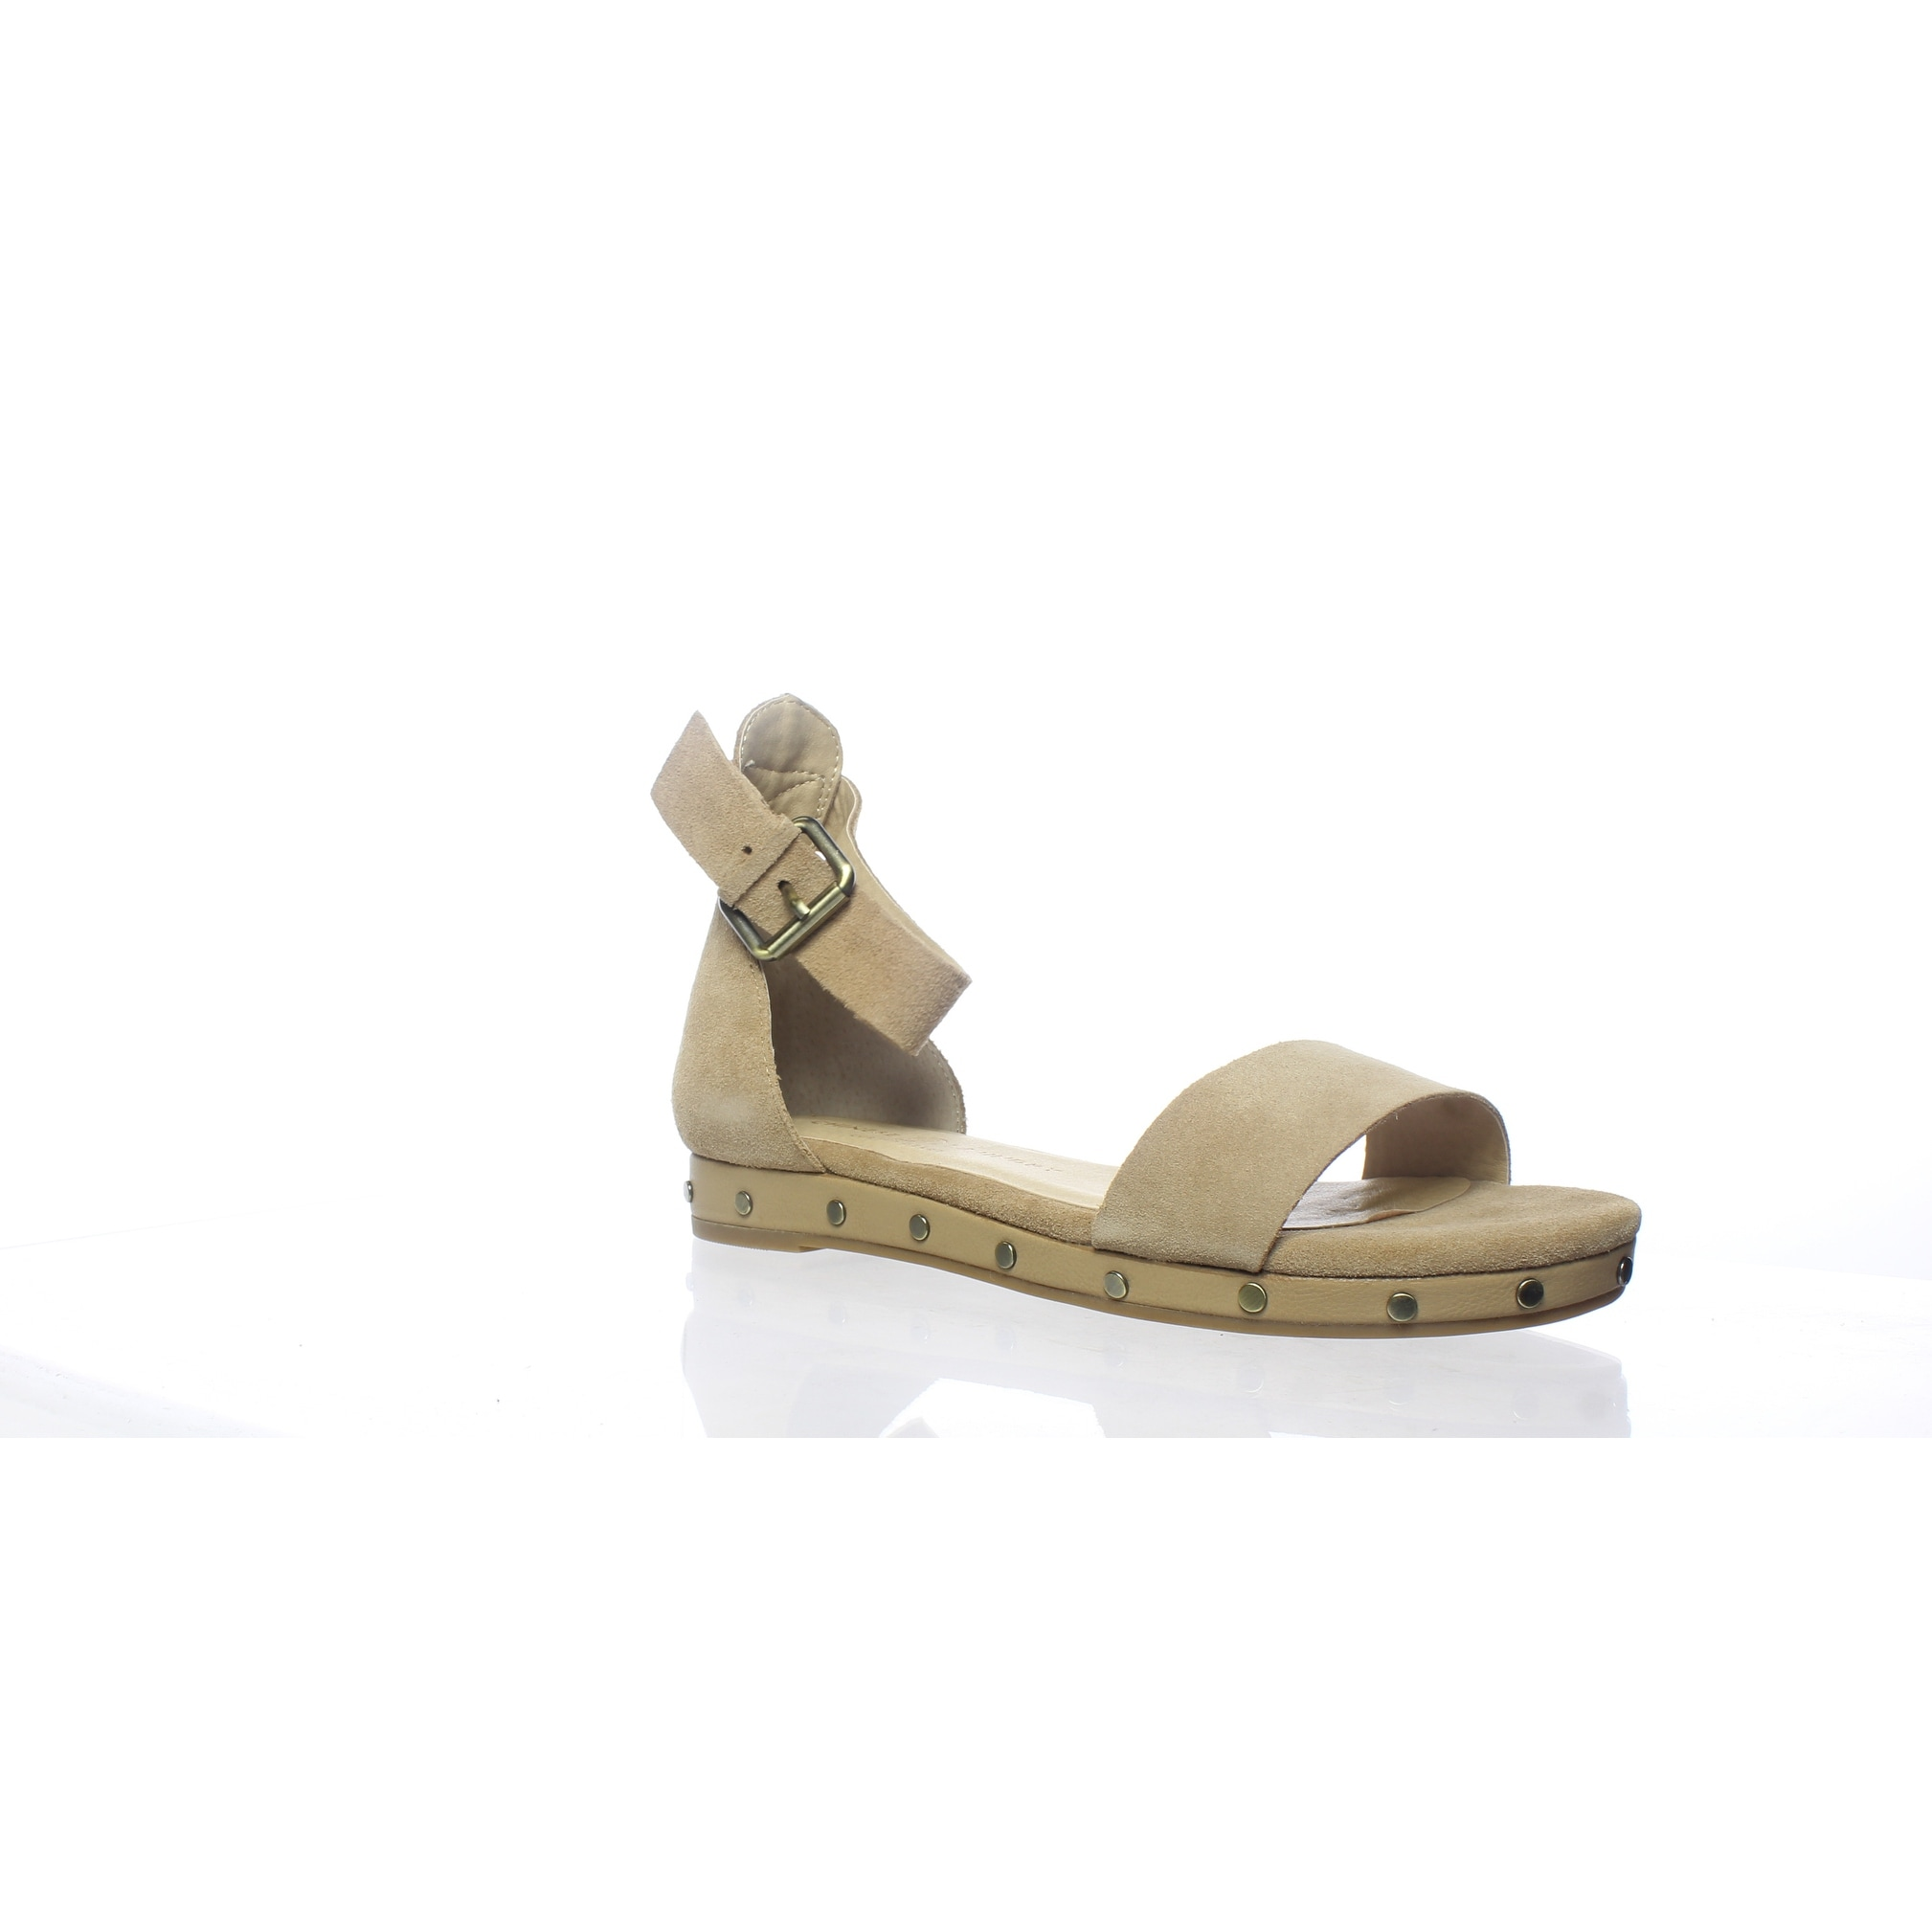 1b550ab40eb Shop Chinese Laundry Womens Grady Camel Suede Ankle Strap Flats Size 7 -  Free Shipping On Orders Over  45 - Overstock - 27986434